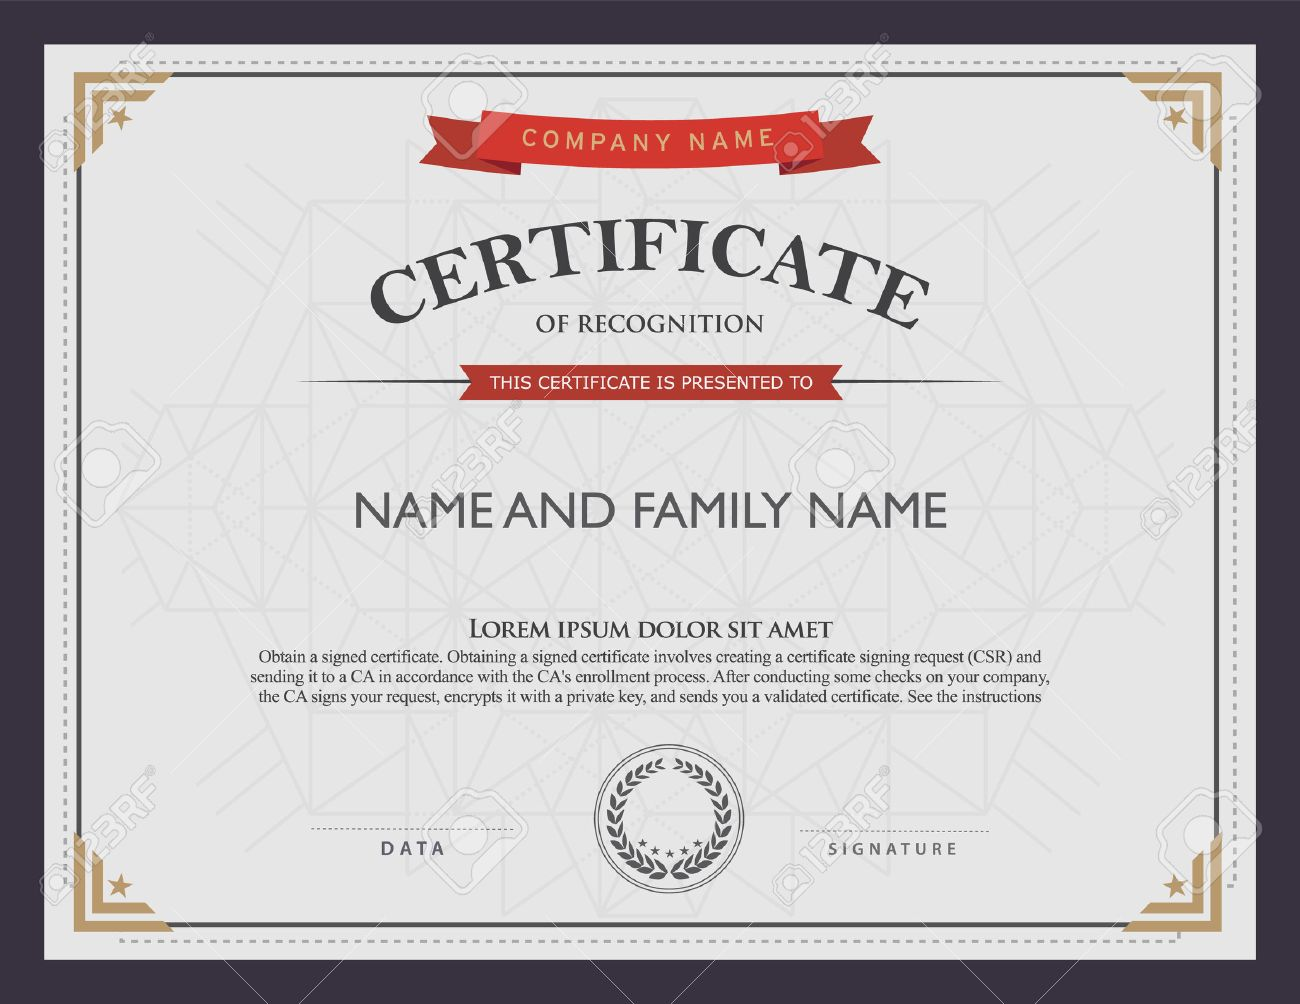 Corporate certificate template proposal template microsoft word vector company certificate templates birthday invitation templates 36988653 certificate template and element stock vector vector company xflitez Image collections